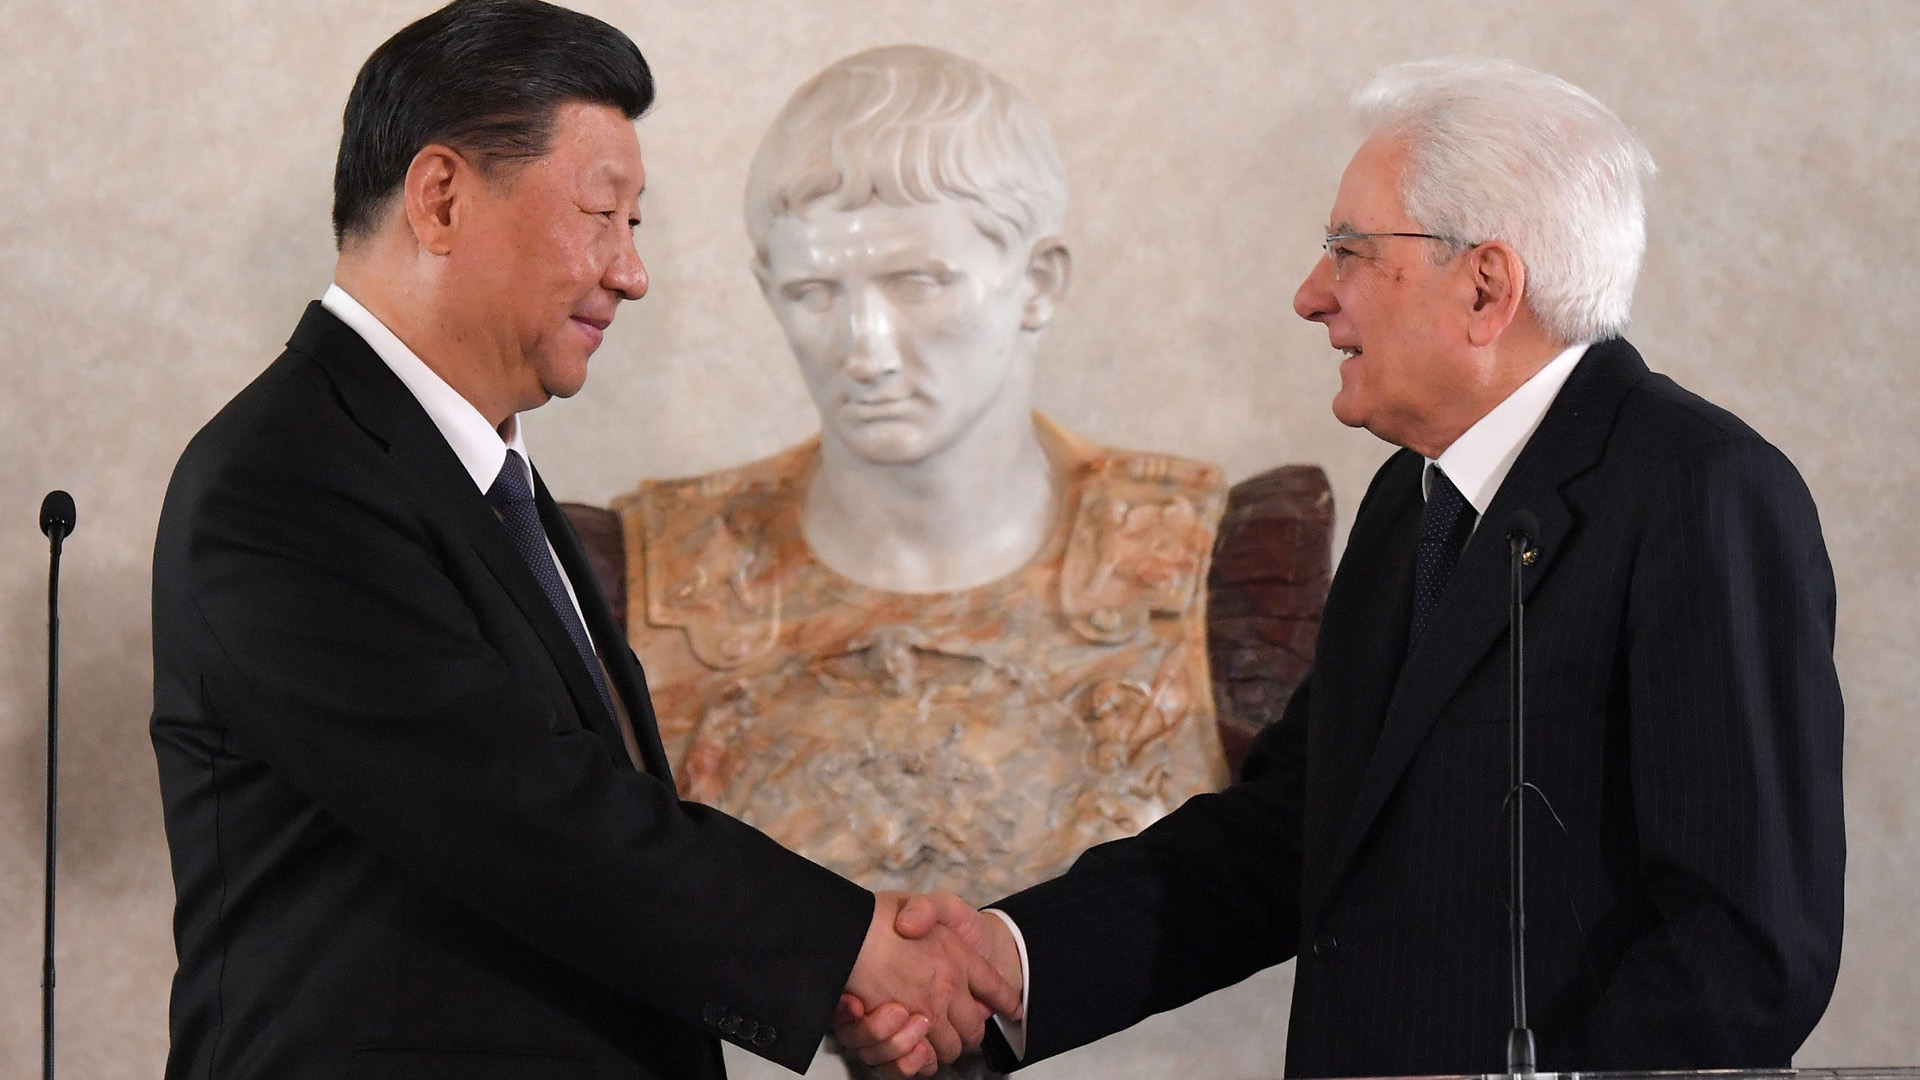 Italian President Sergio Mattarella (R) and Chinese President Xi Jinping shake hands after addressing a forum of businessmen on March 22, 2019 at the Quirinale presidential palace in Rome, as part of Xi Jinping's two-day visit to Italy.(Credit: TIZIANA FABI/AFP/Getty Images)